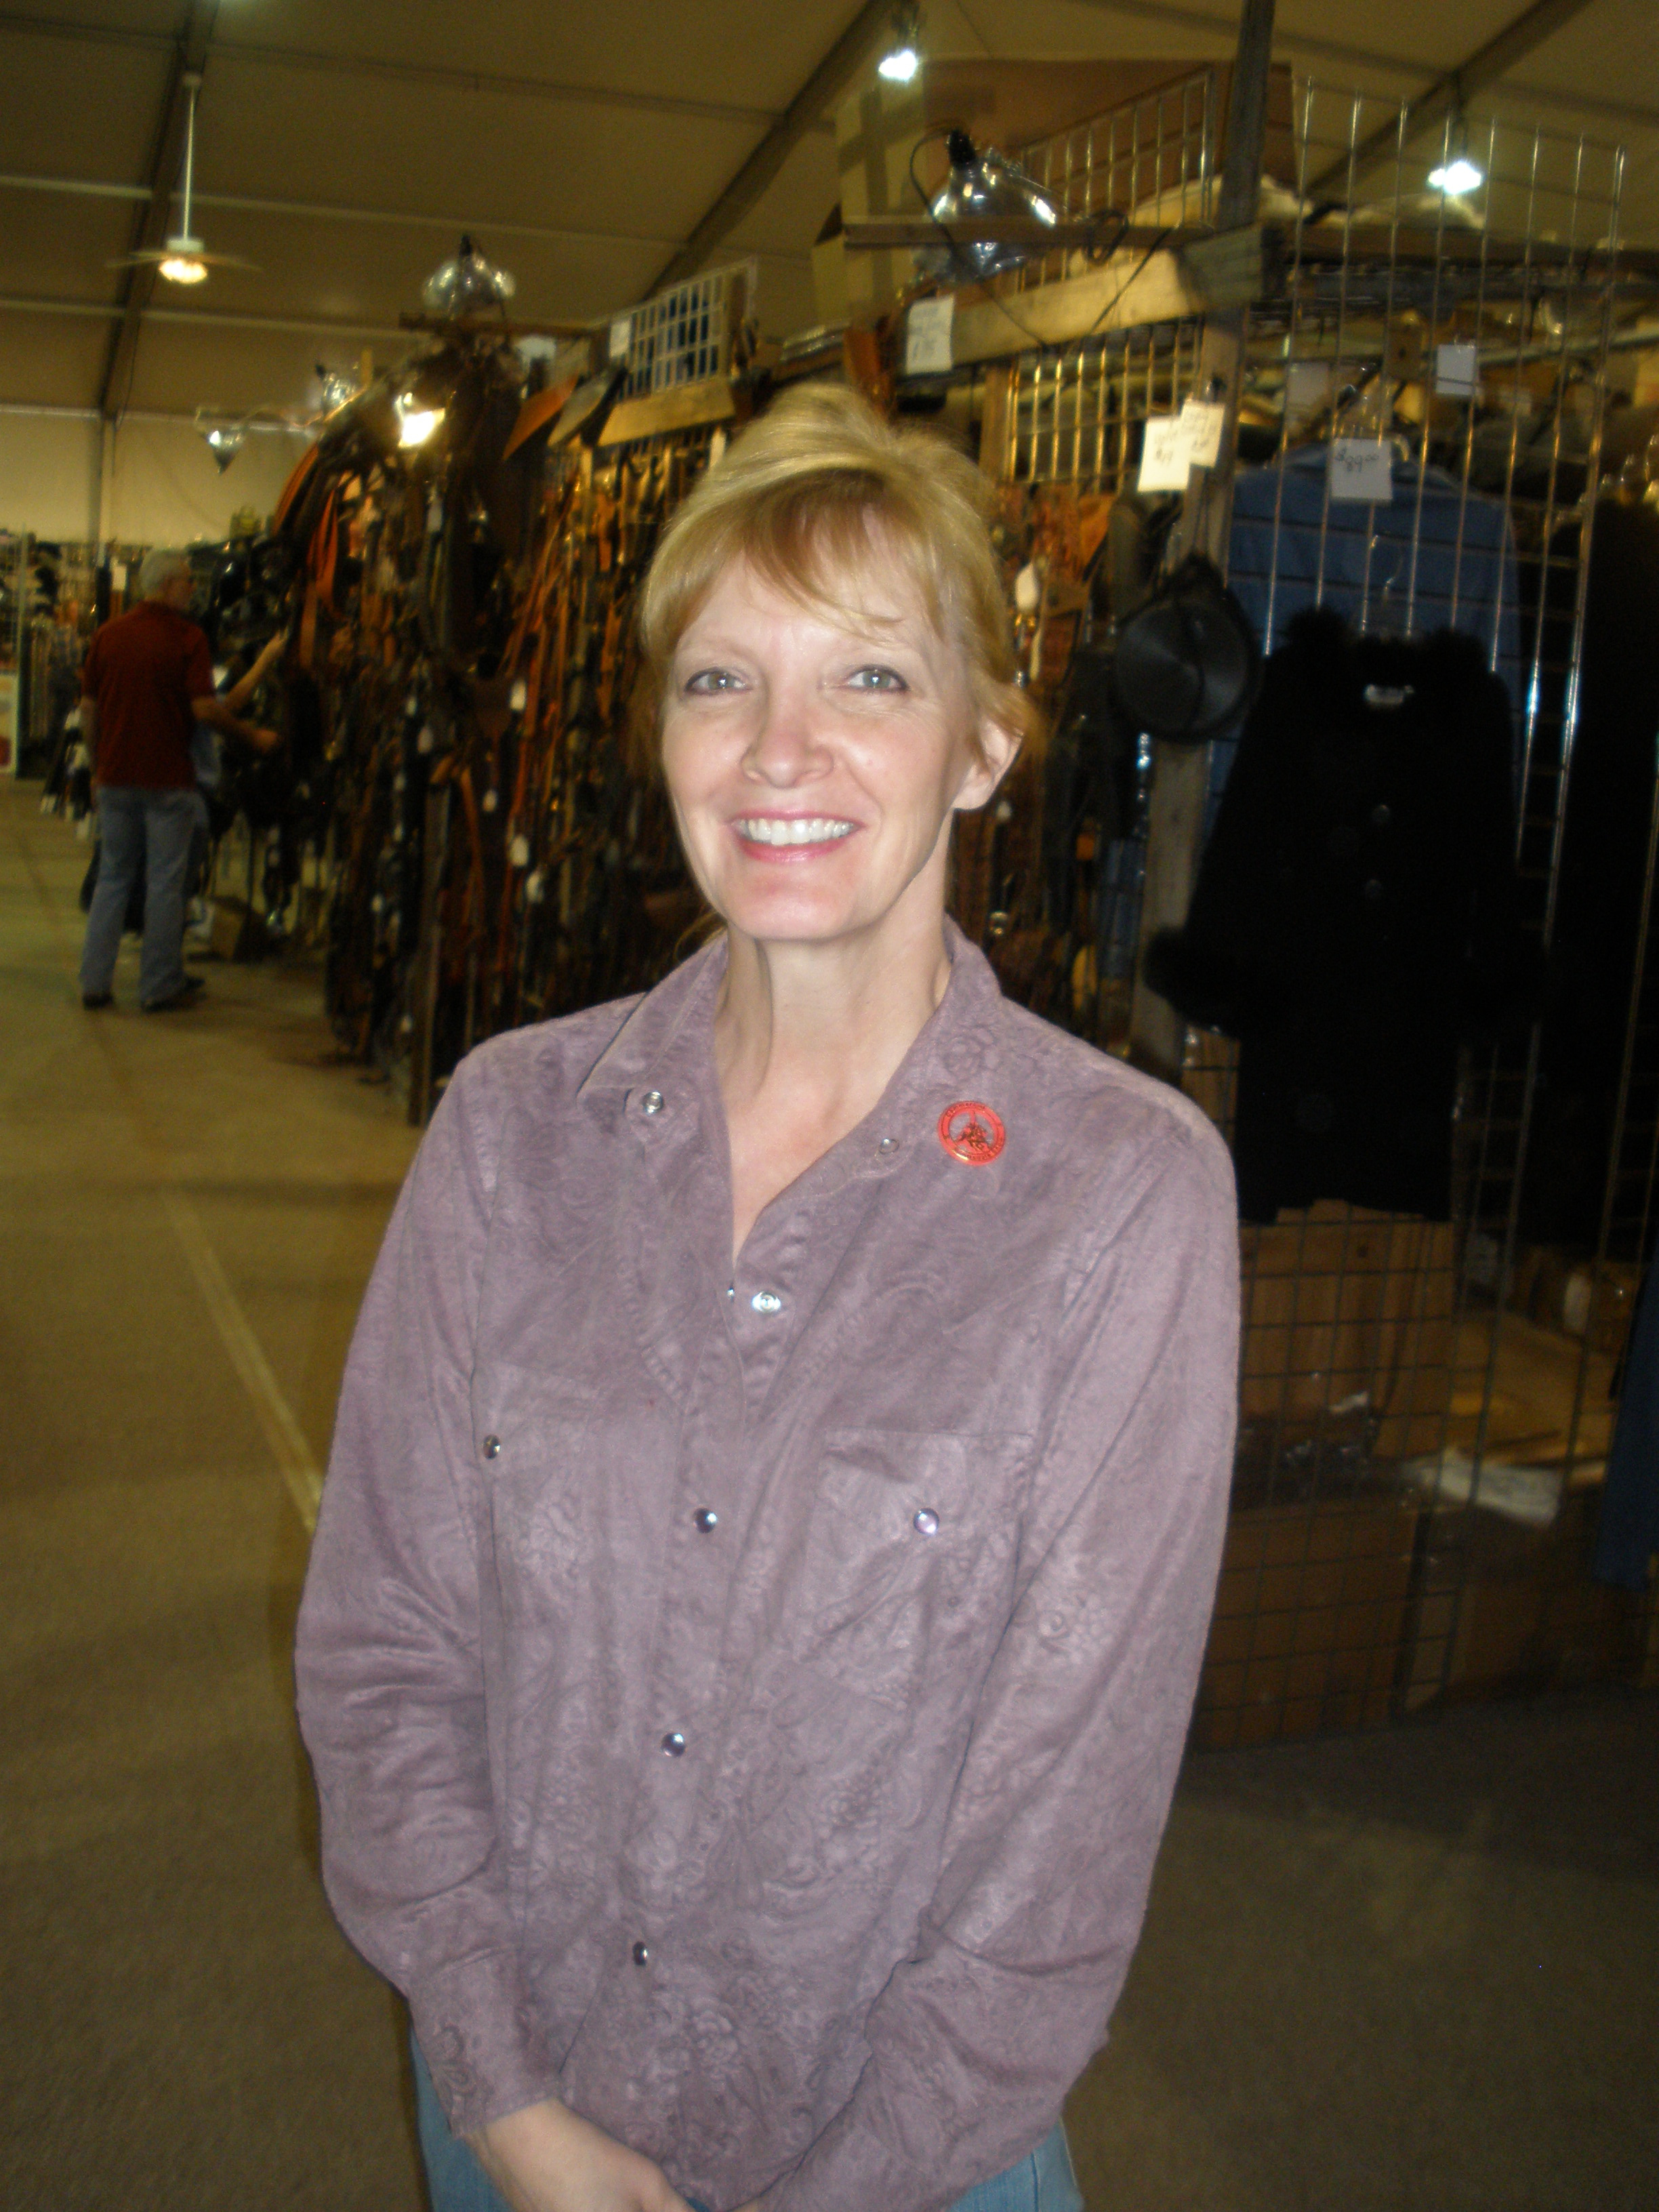 Linda Fox-Dangaard at The Australian Stock Saddle Company Equine Expo booth